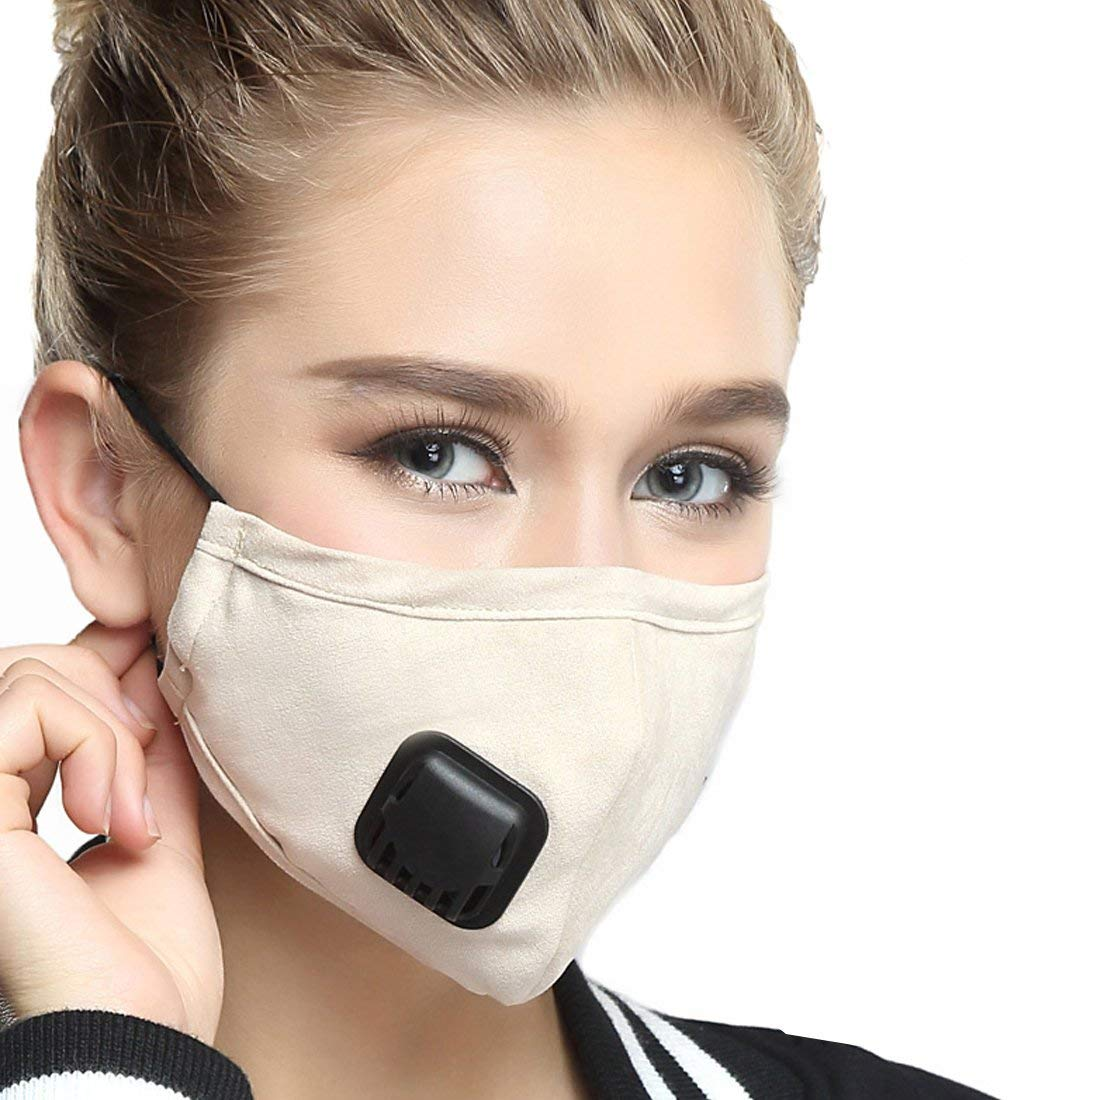 bca9e85df24 Get Quotations · Healthyair Masks PM 2.5 Anti Pollution Mask With Valve  Pynogeez Washable Dust Respirator Cotton Mouth Masks